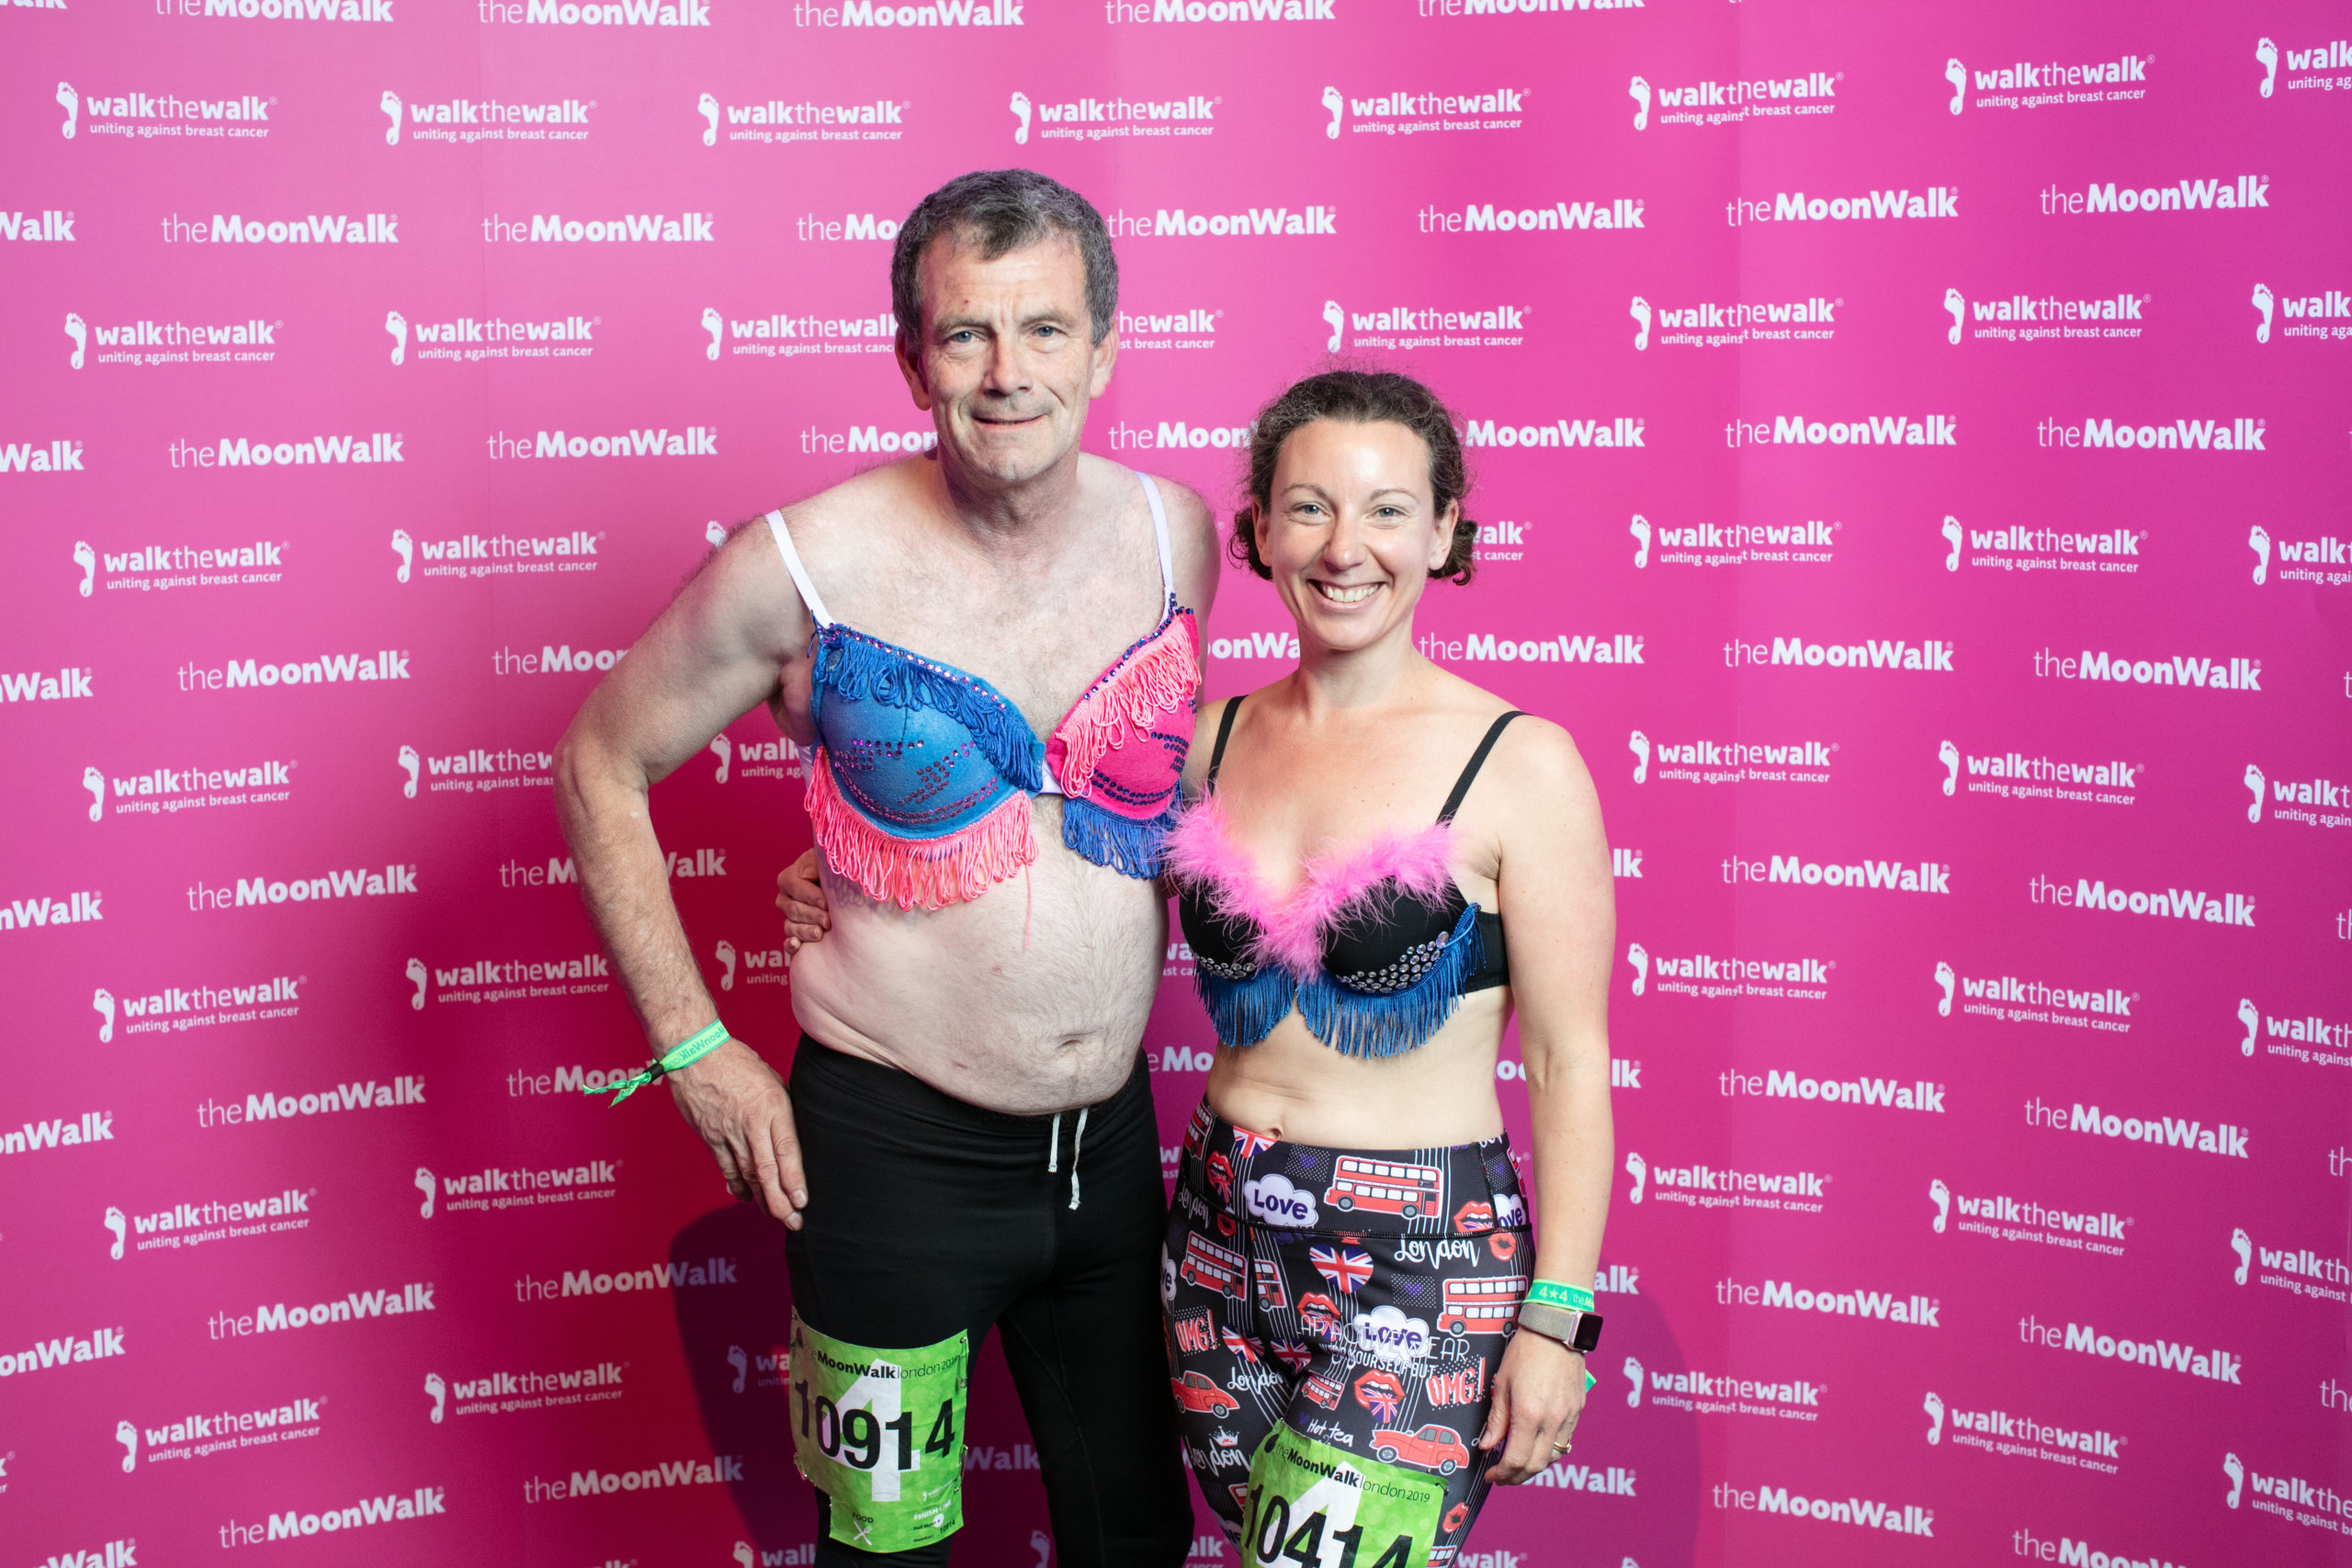 Richard Galloway with Delia Treby, one of his fellow MoonWalk participants